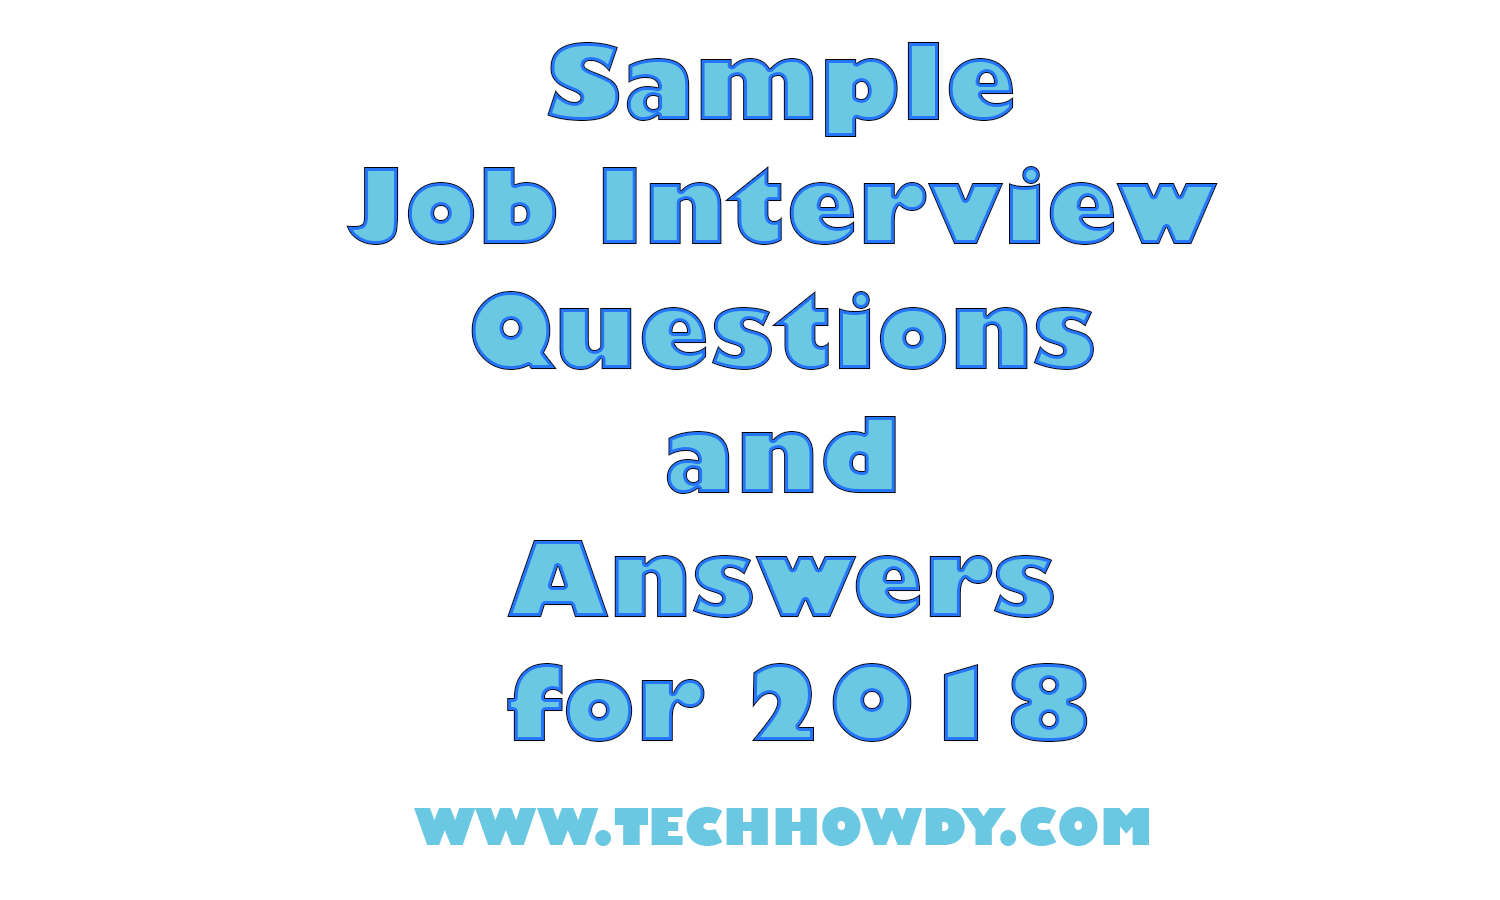 sample job interview questions and answers for 2018 techhowdy